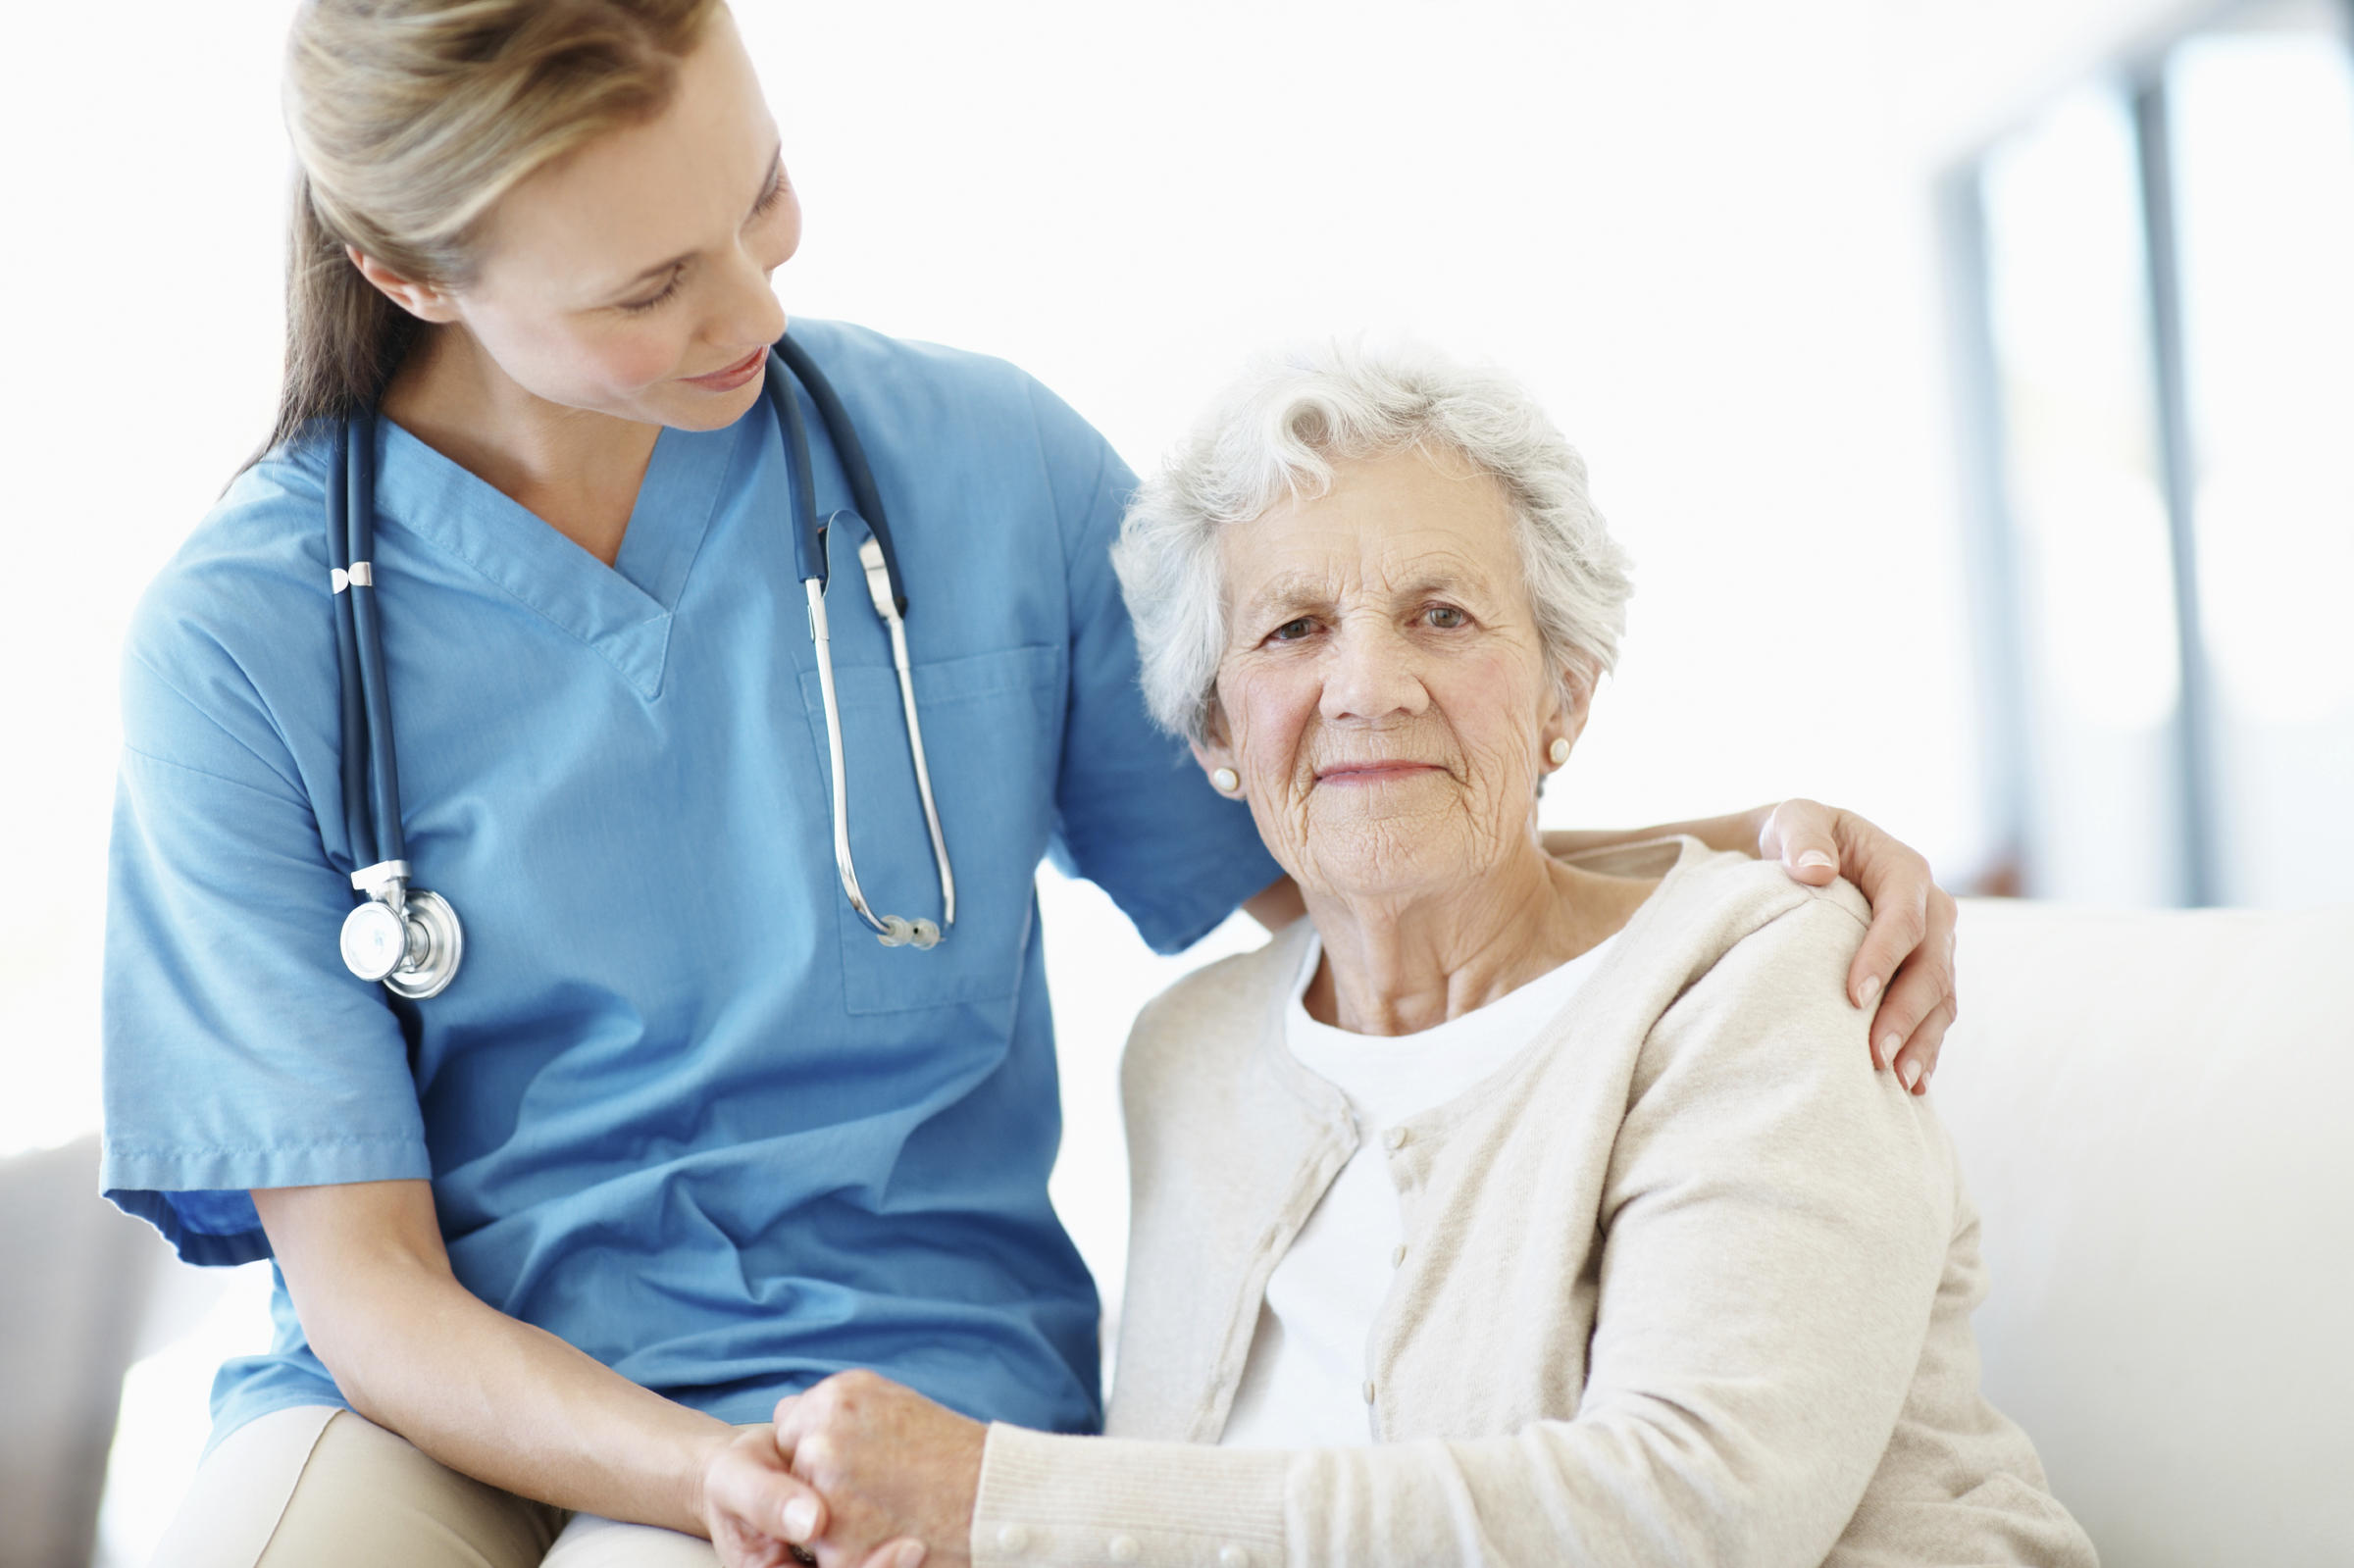 What Healthcare Workers Should Know About Patients With Hearing Loss